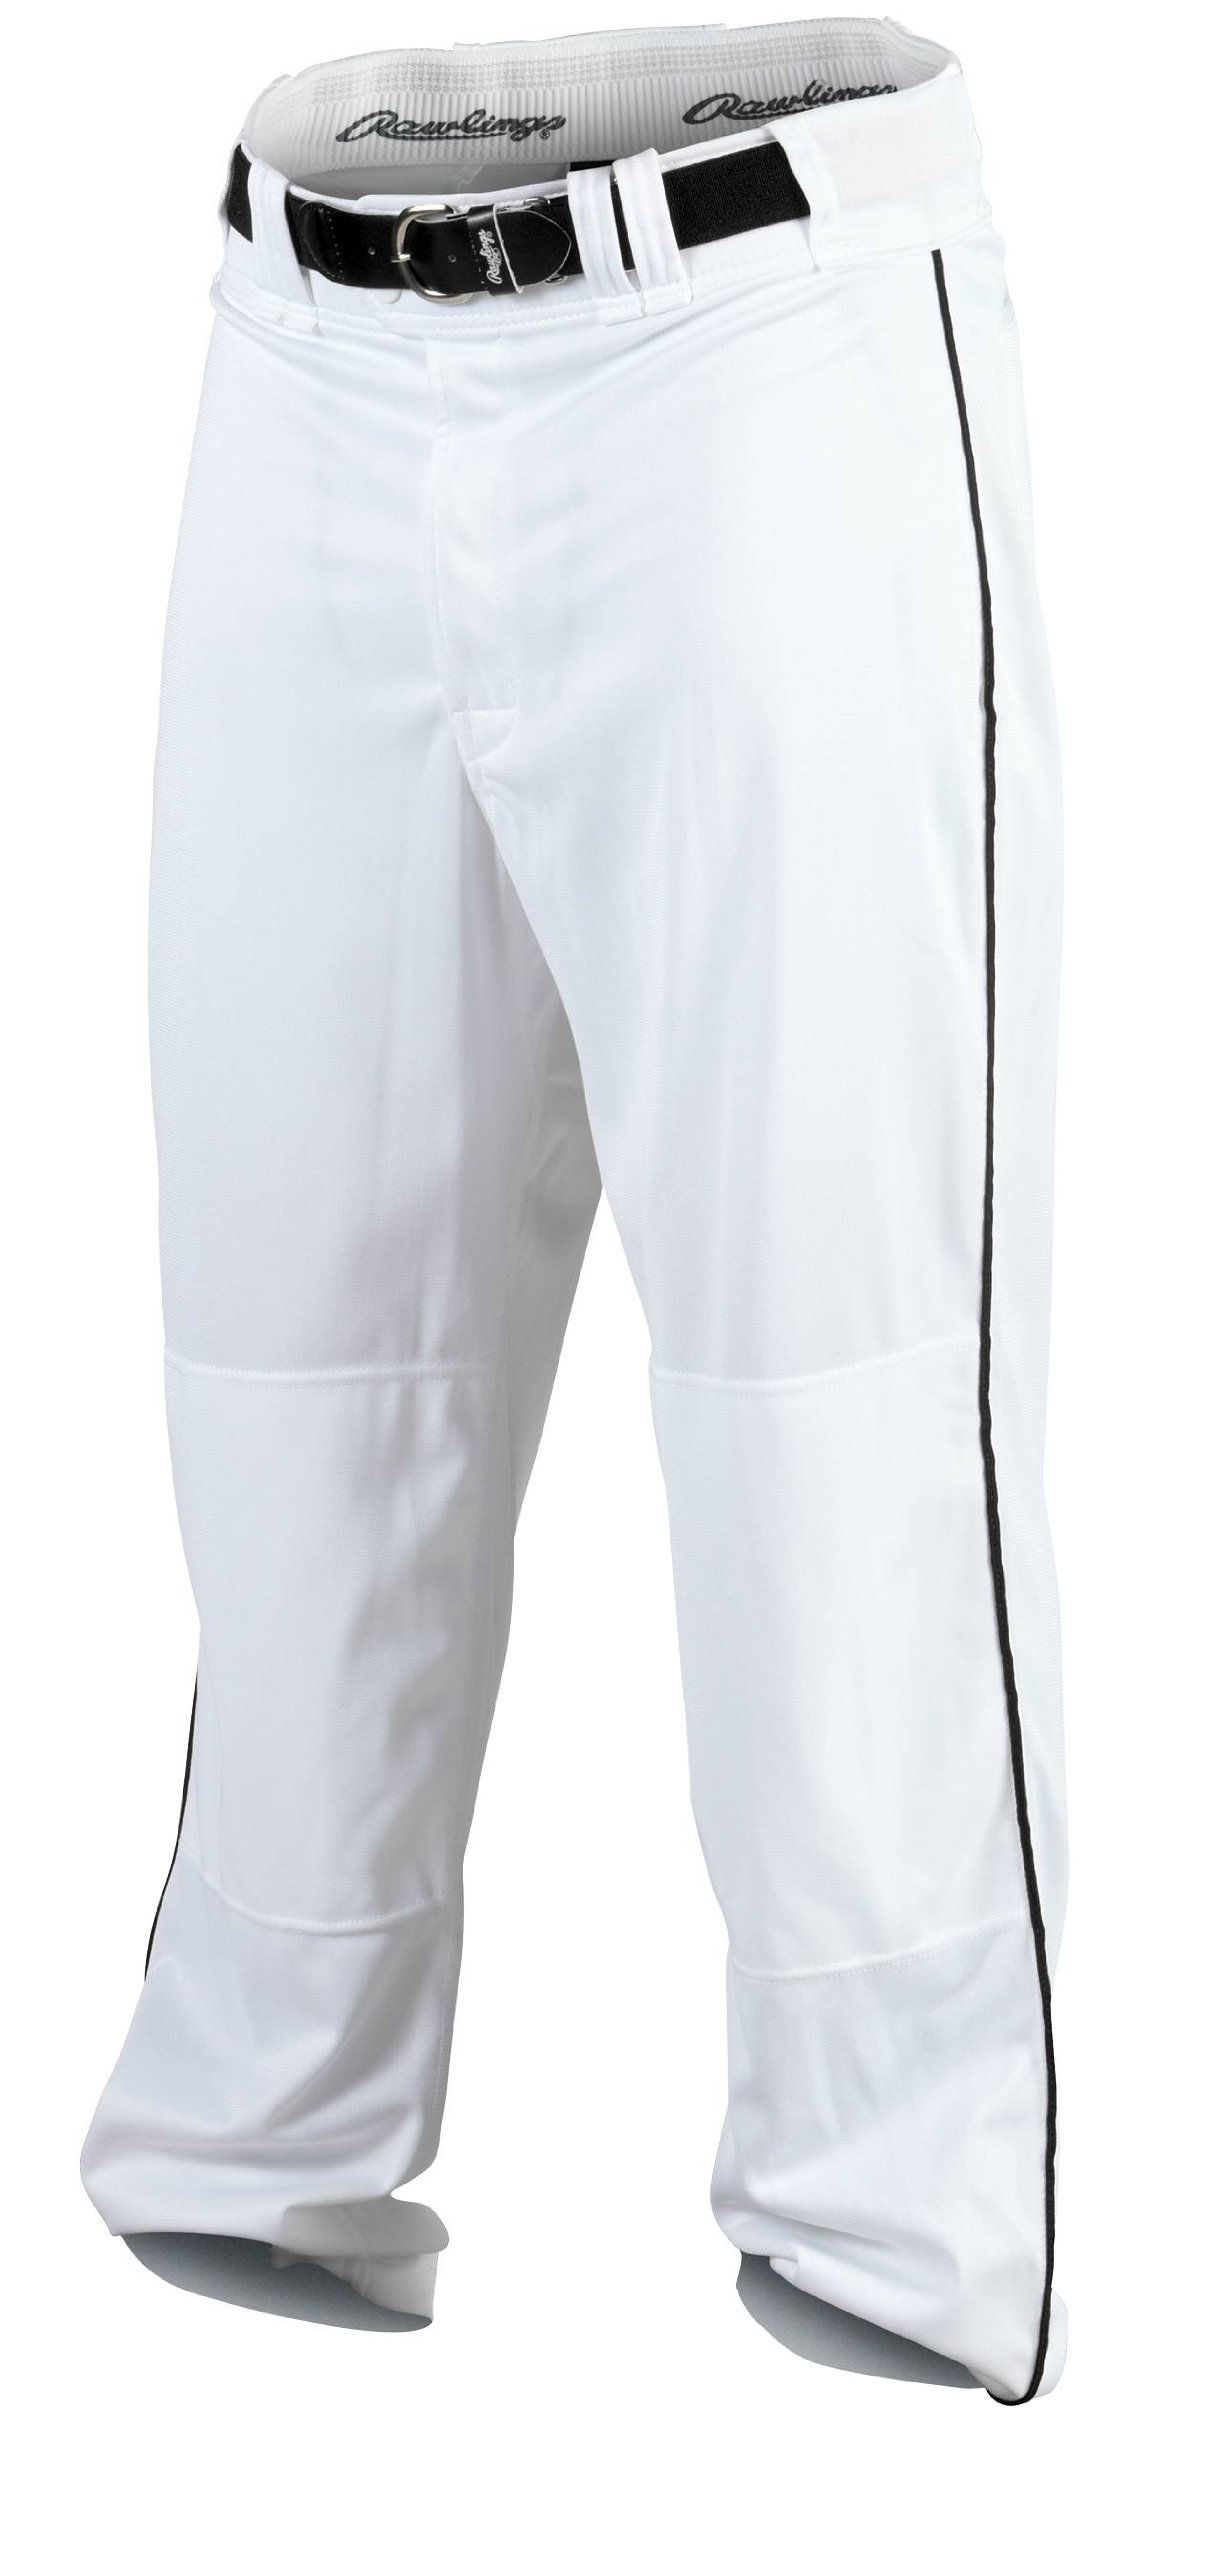 Rawlings Youth Baseball Pant (White/Black, X-Large) by Rawlings